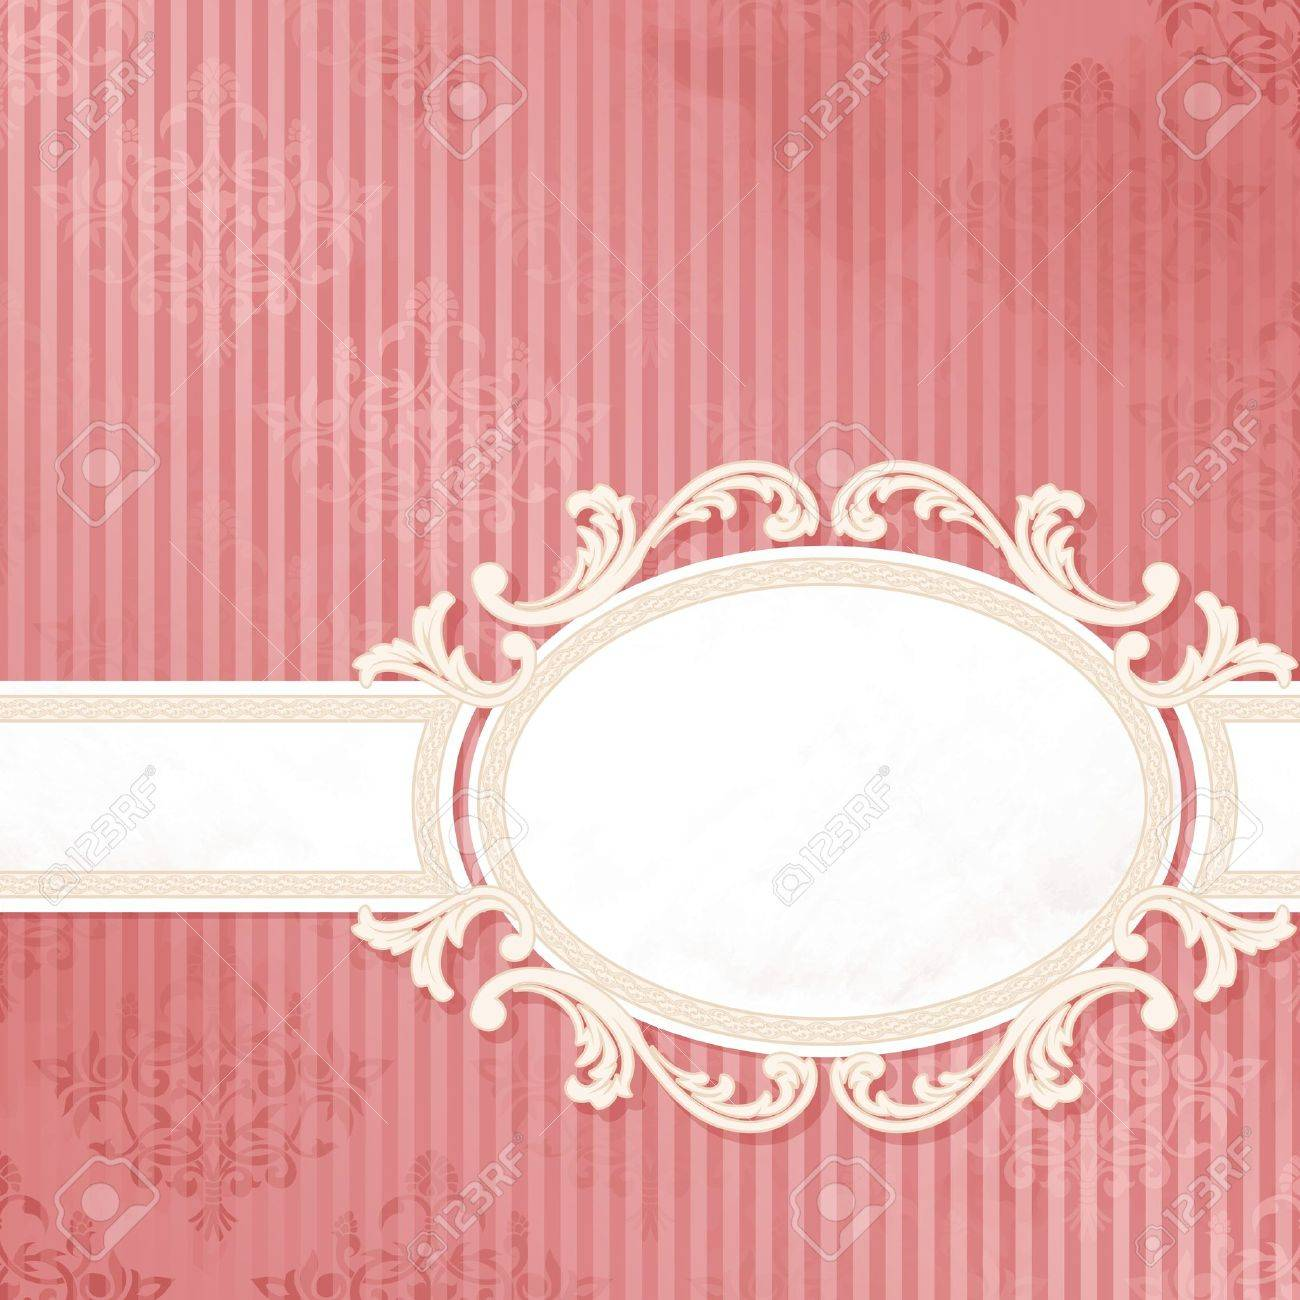 Grungy, intricate  pink and white banner design. Graphics are grouped and in several layers for easy editing. The file can be scaled to any size. Stock Vector - 10312862